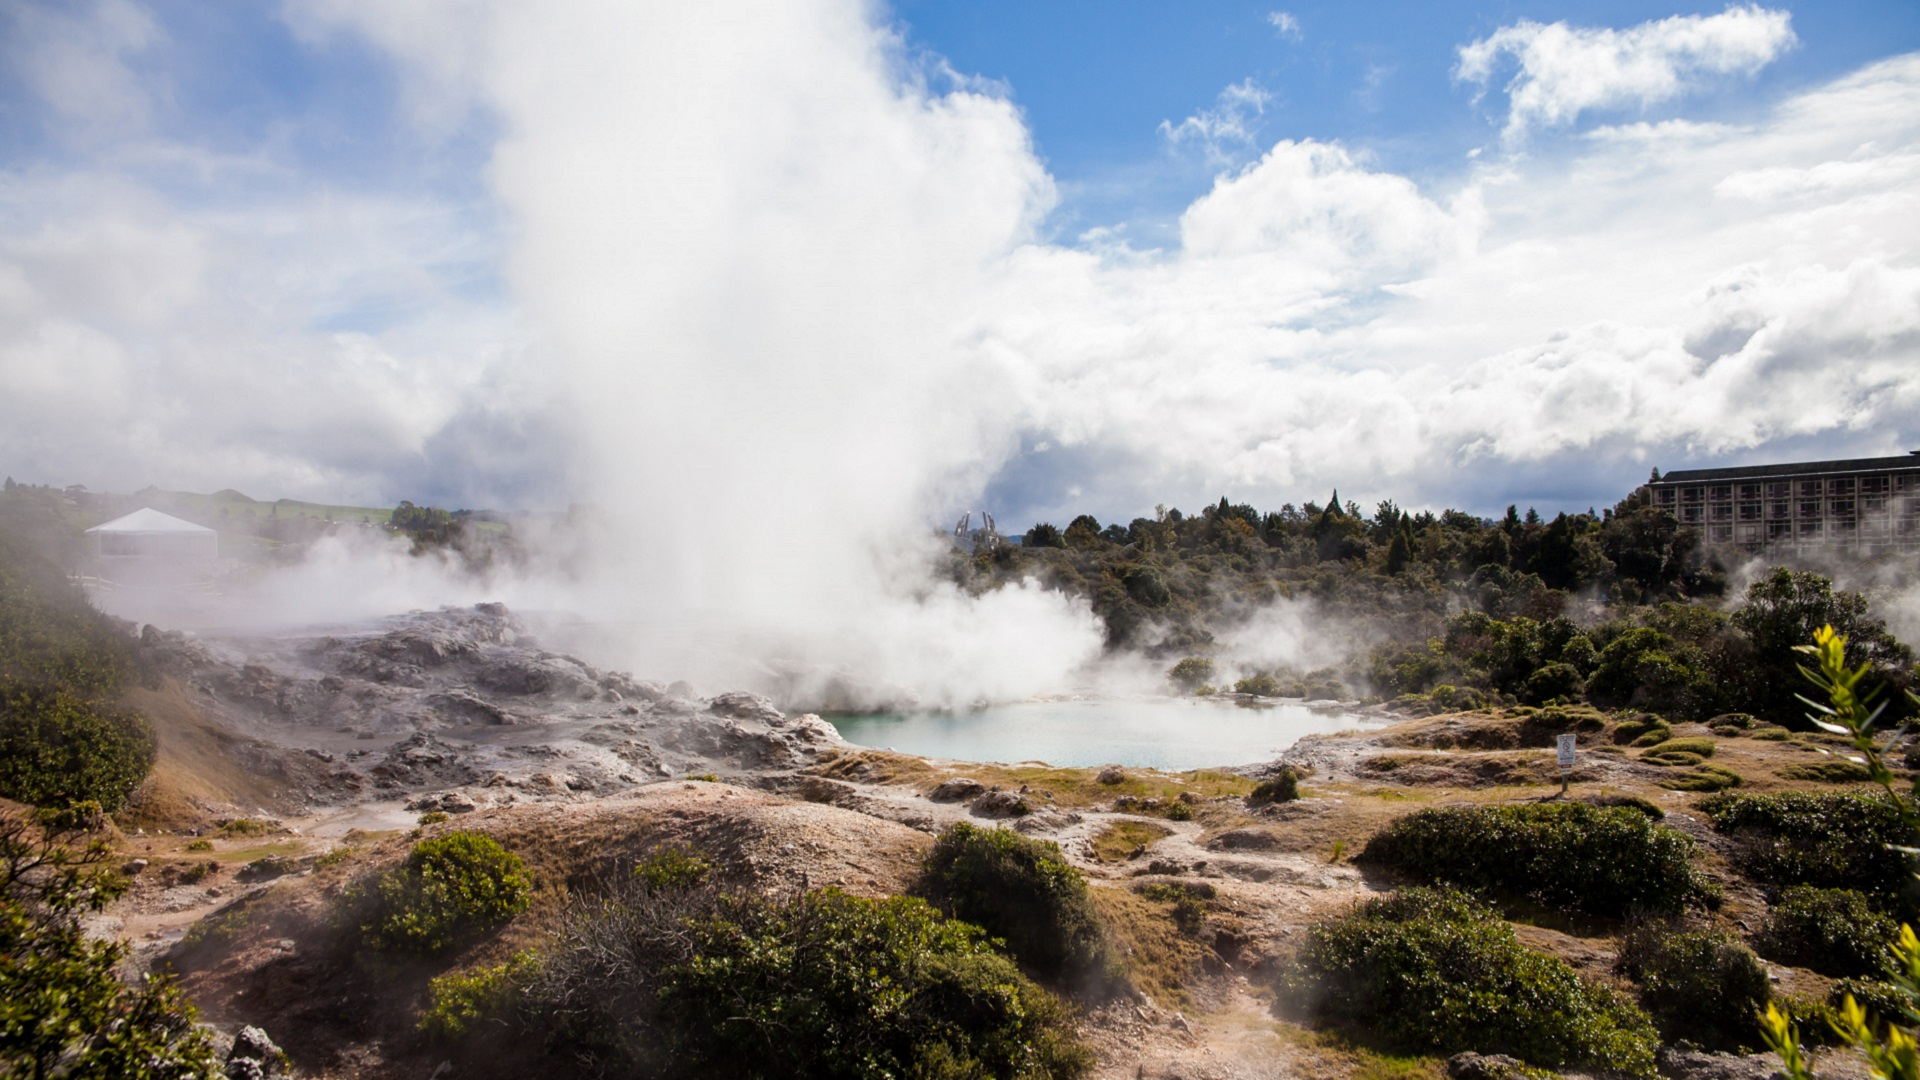 hot springs_origins of life on earth_new zealand